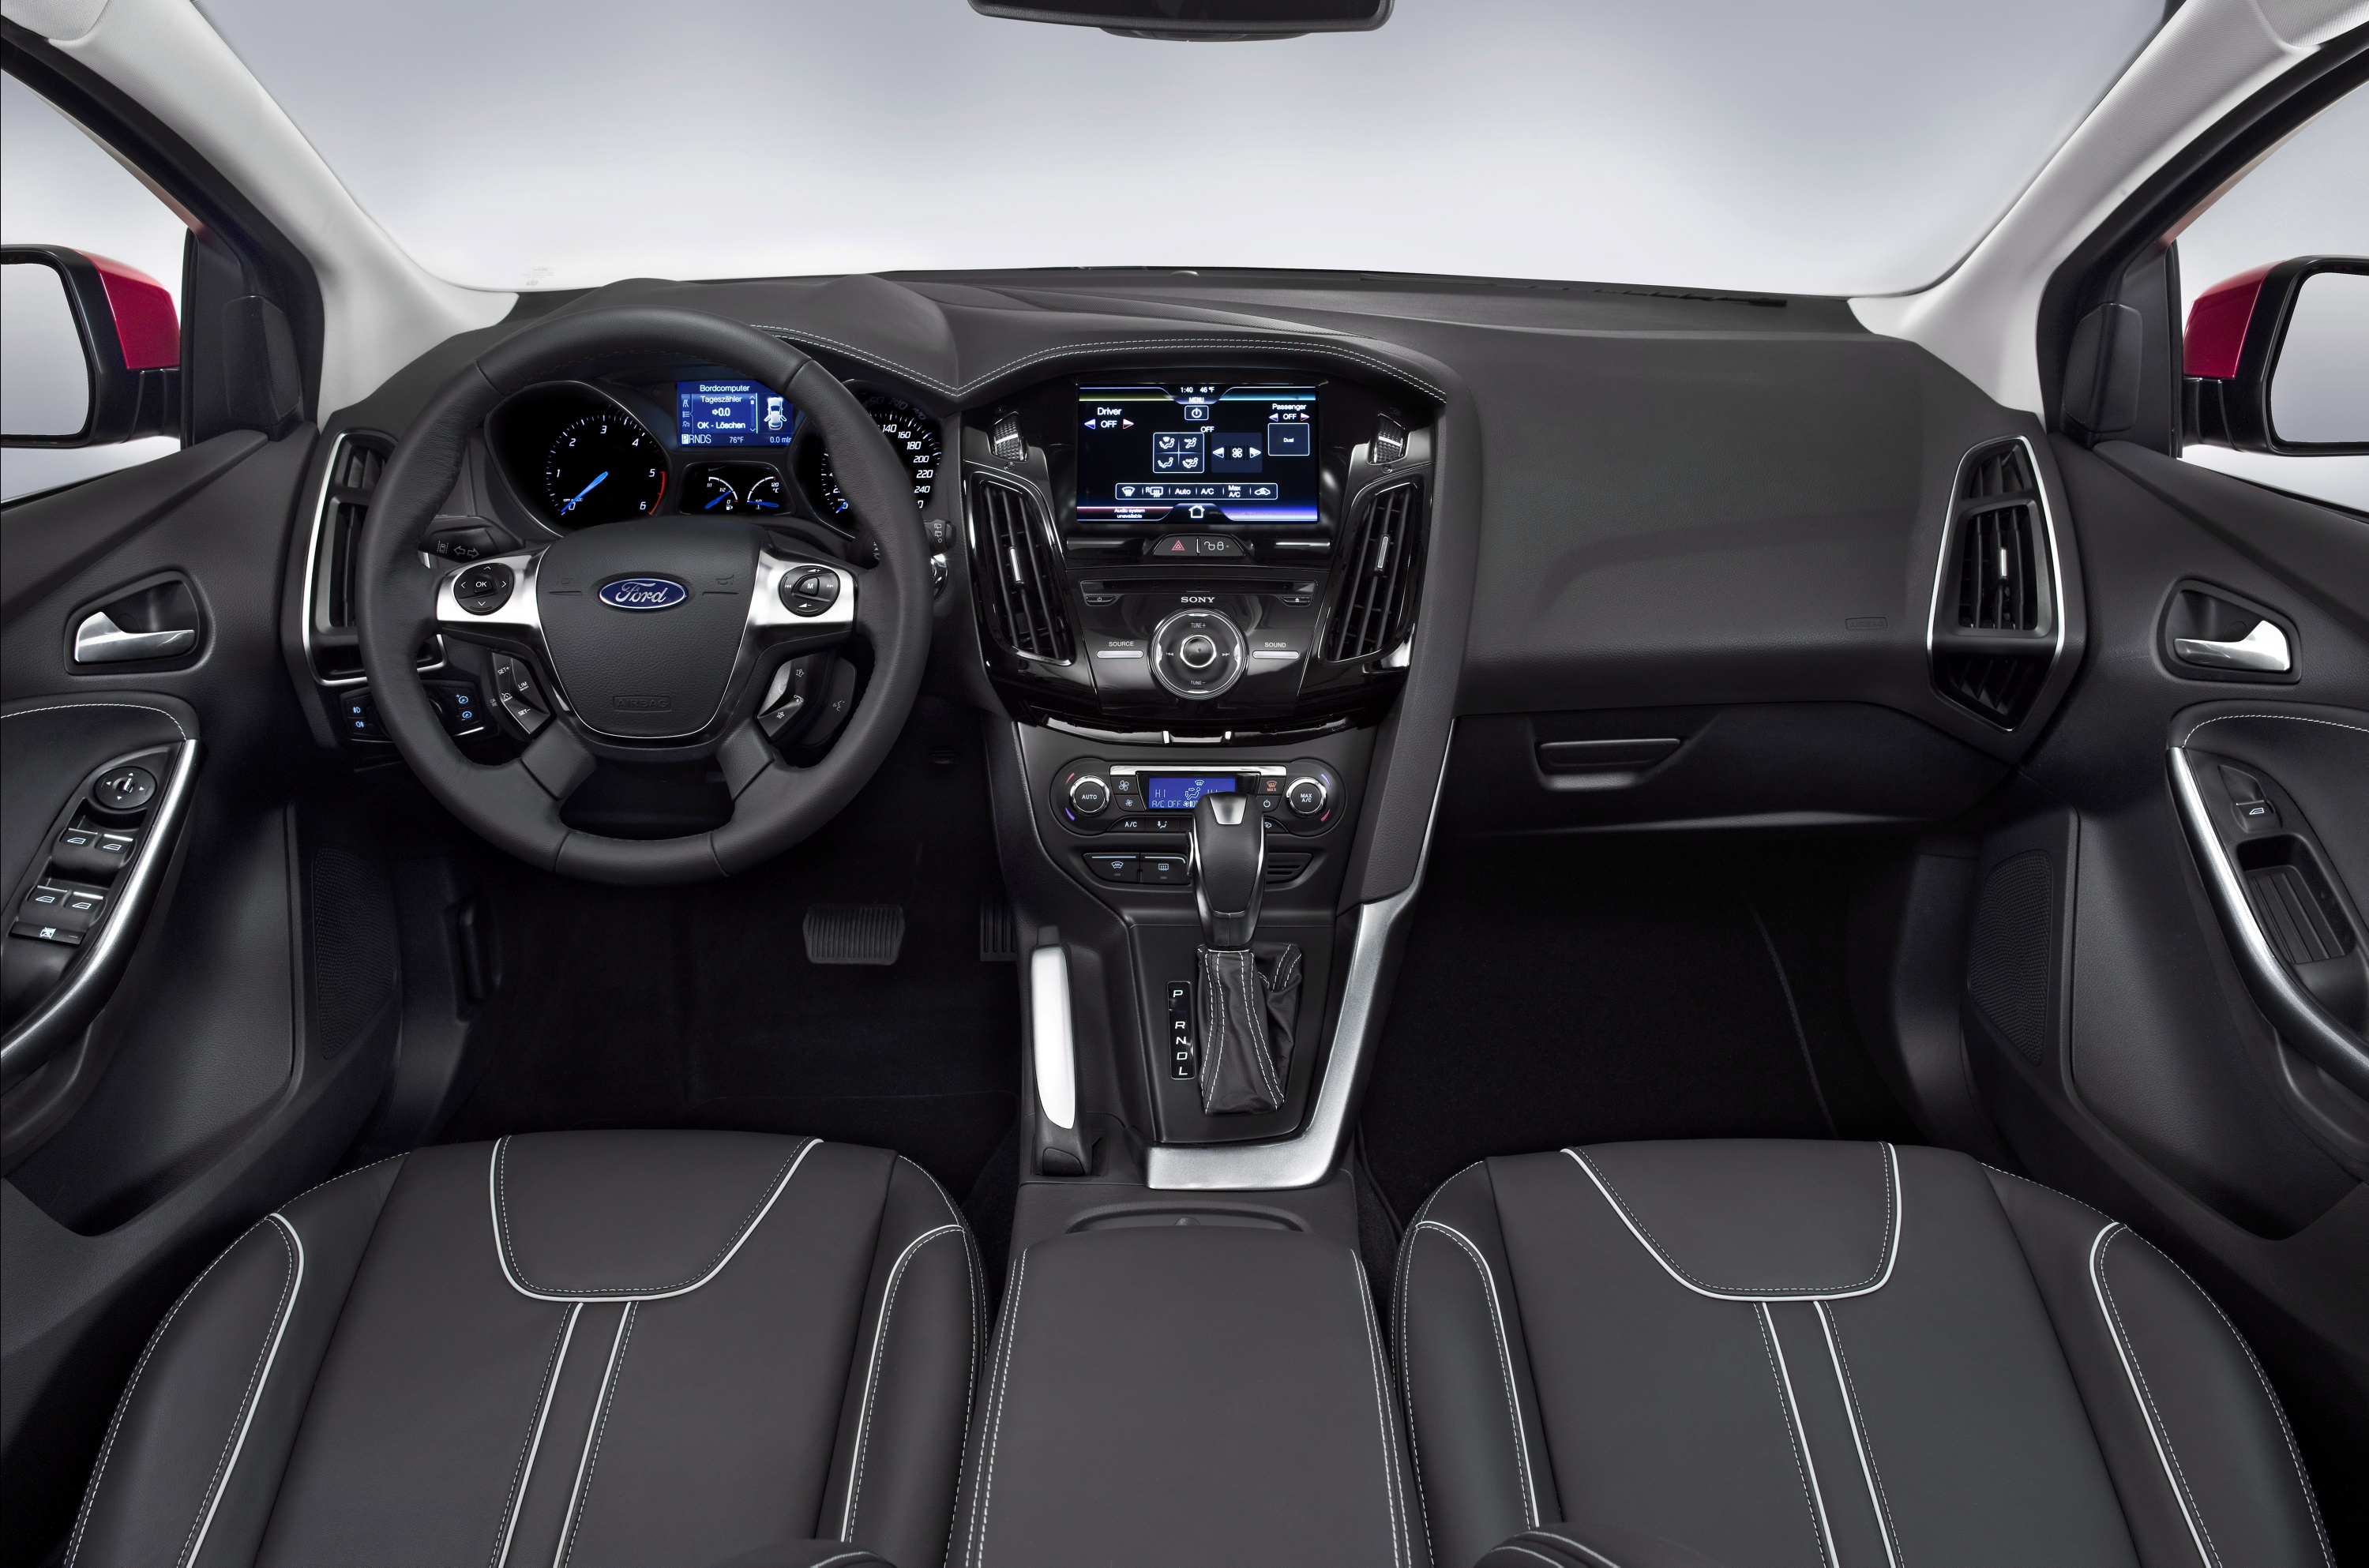 fiesta in form but adds to in function due 2011 ford fiesta interior